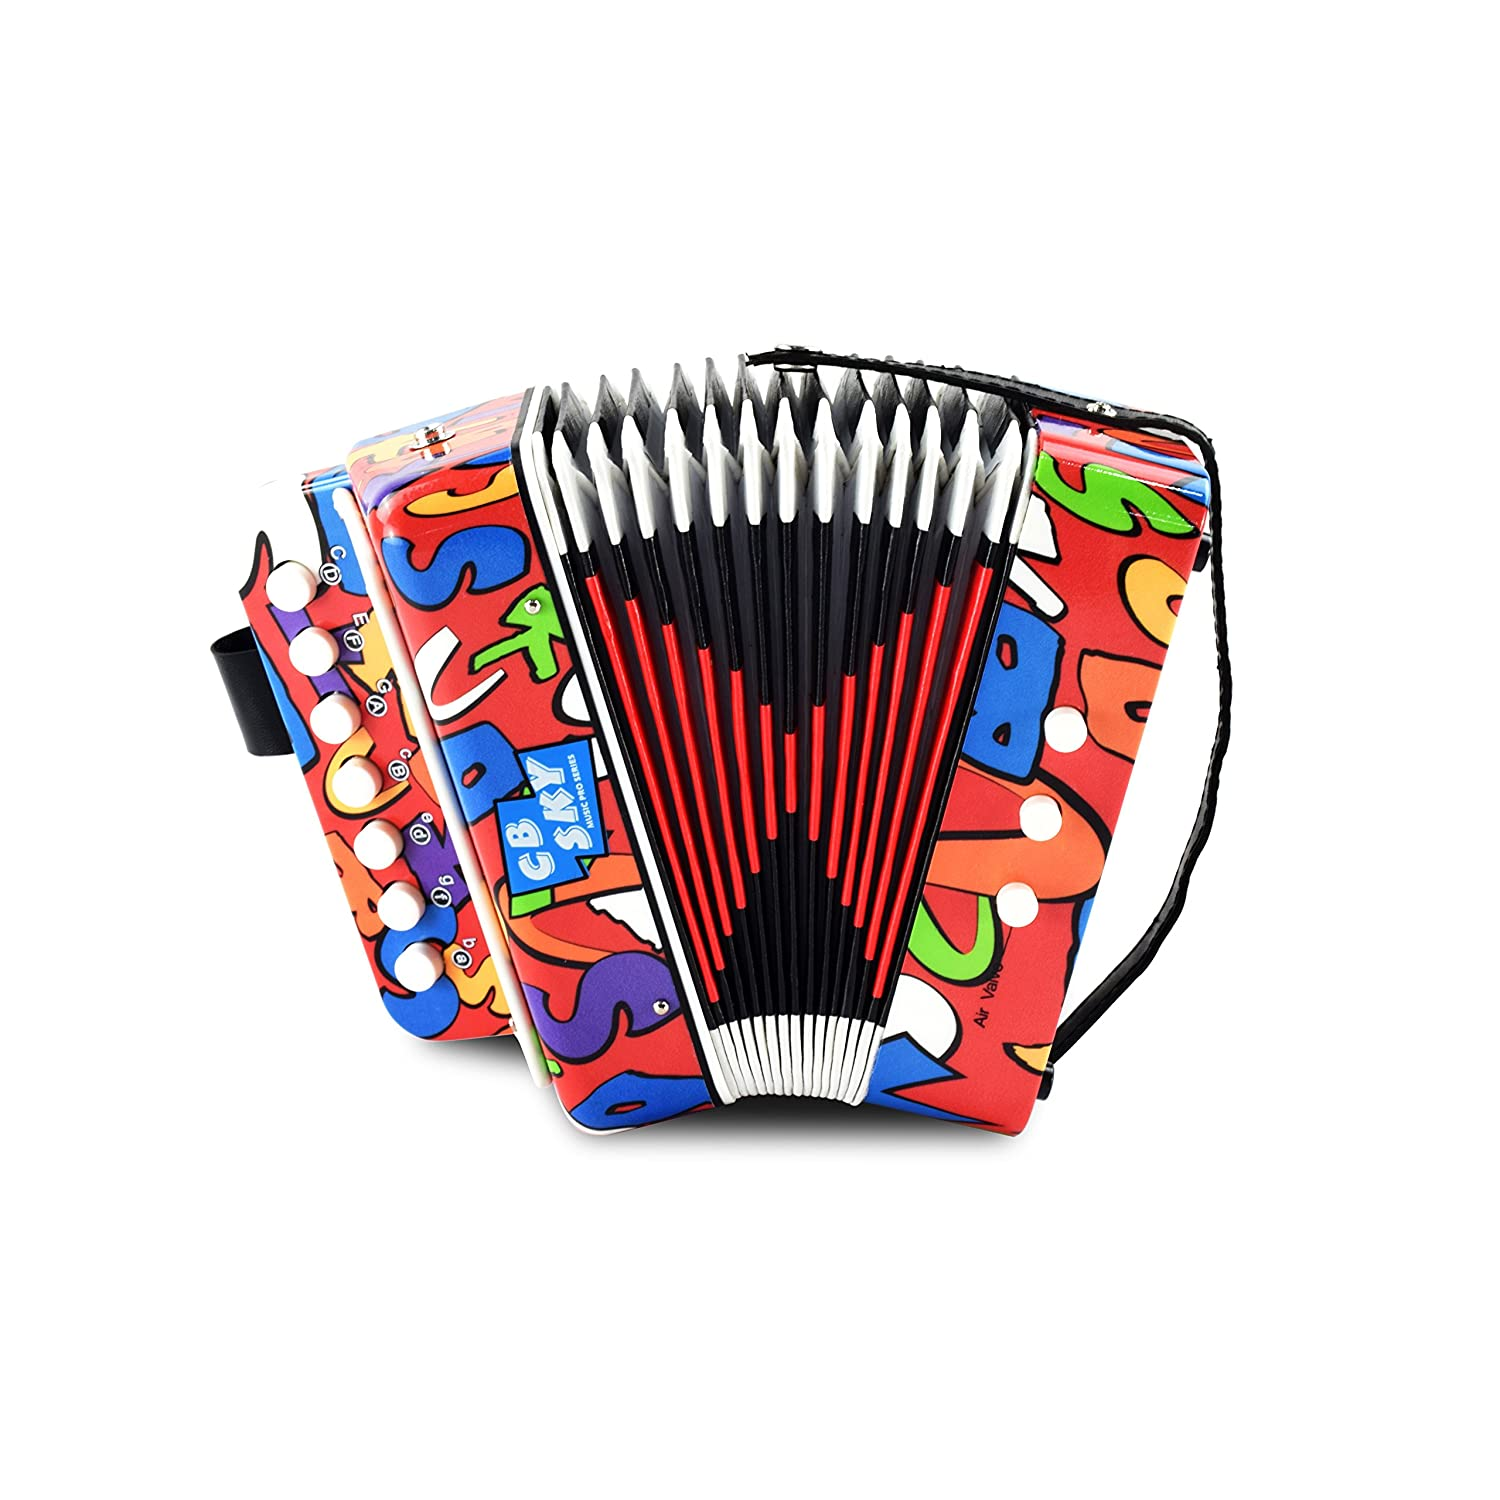 CB SKY Kids' Accordion / Kids Musical Instrument / Musical Toys(R2) MA104R